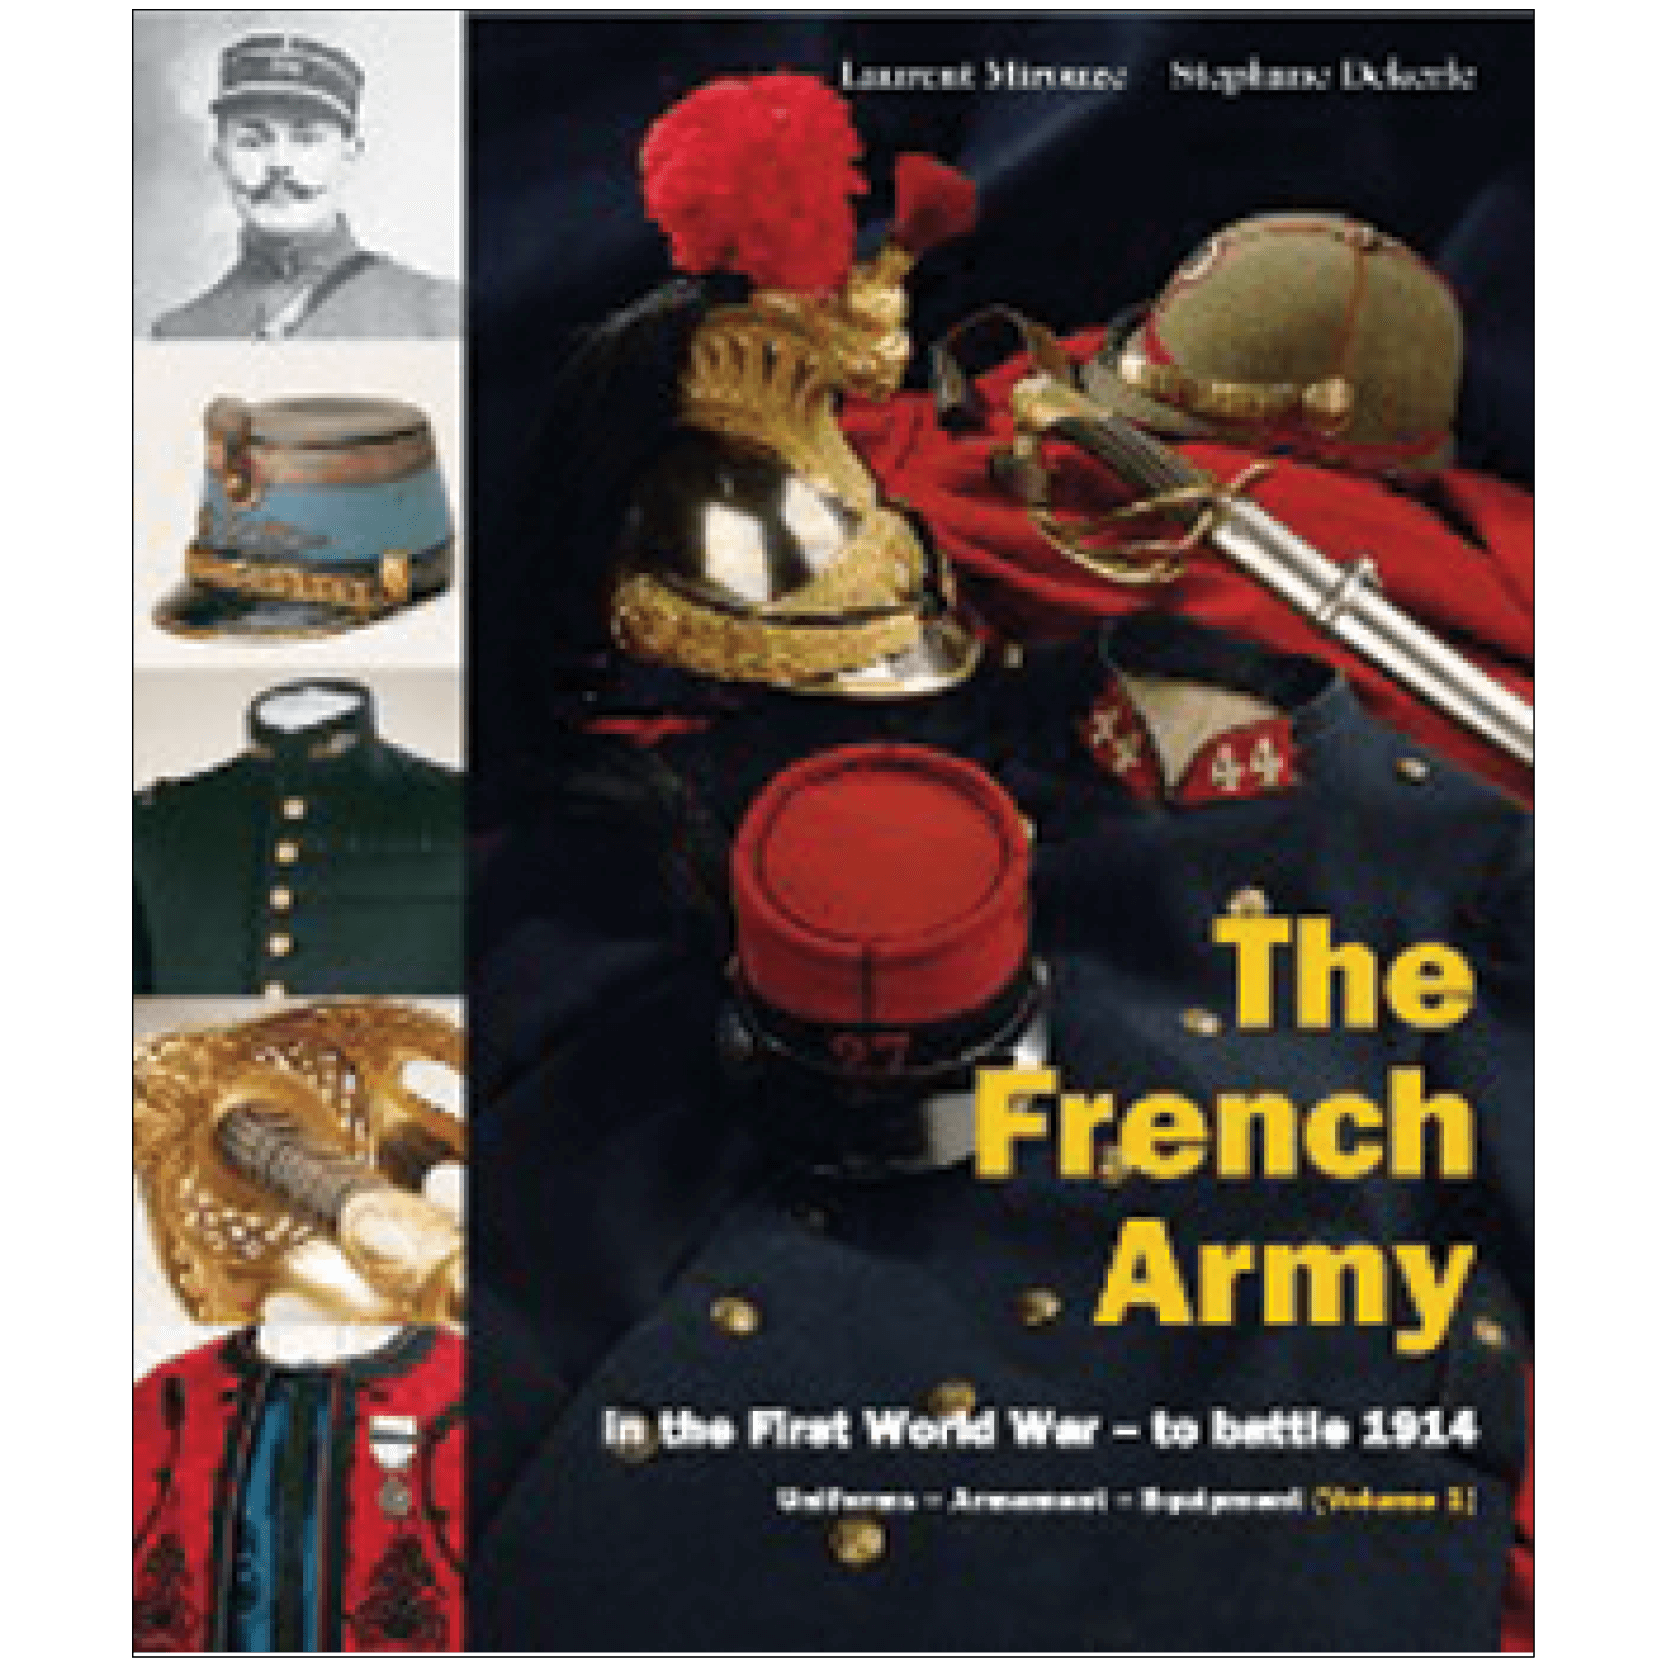 The French Army In The First World War Volume 1 By Mirouze & Dekerle